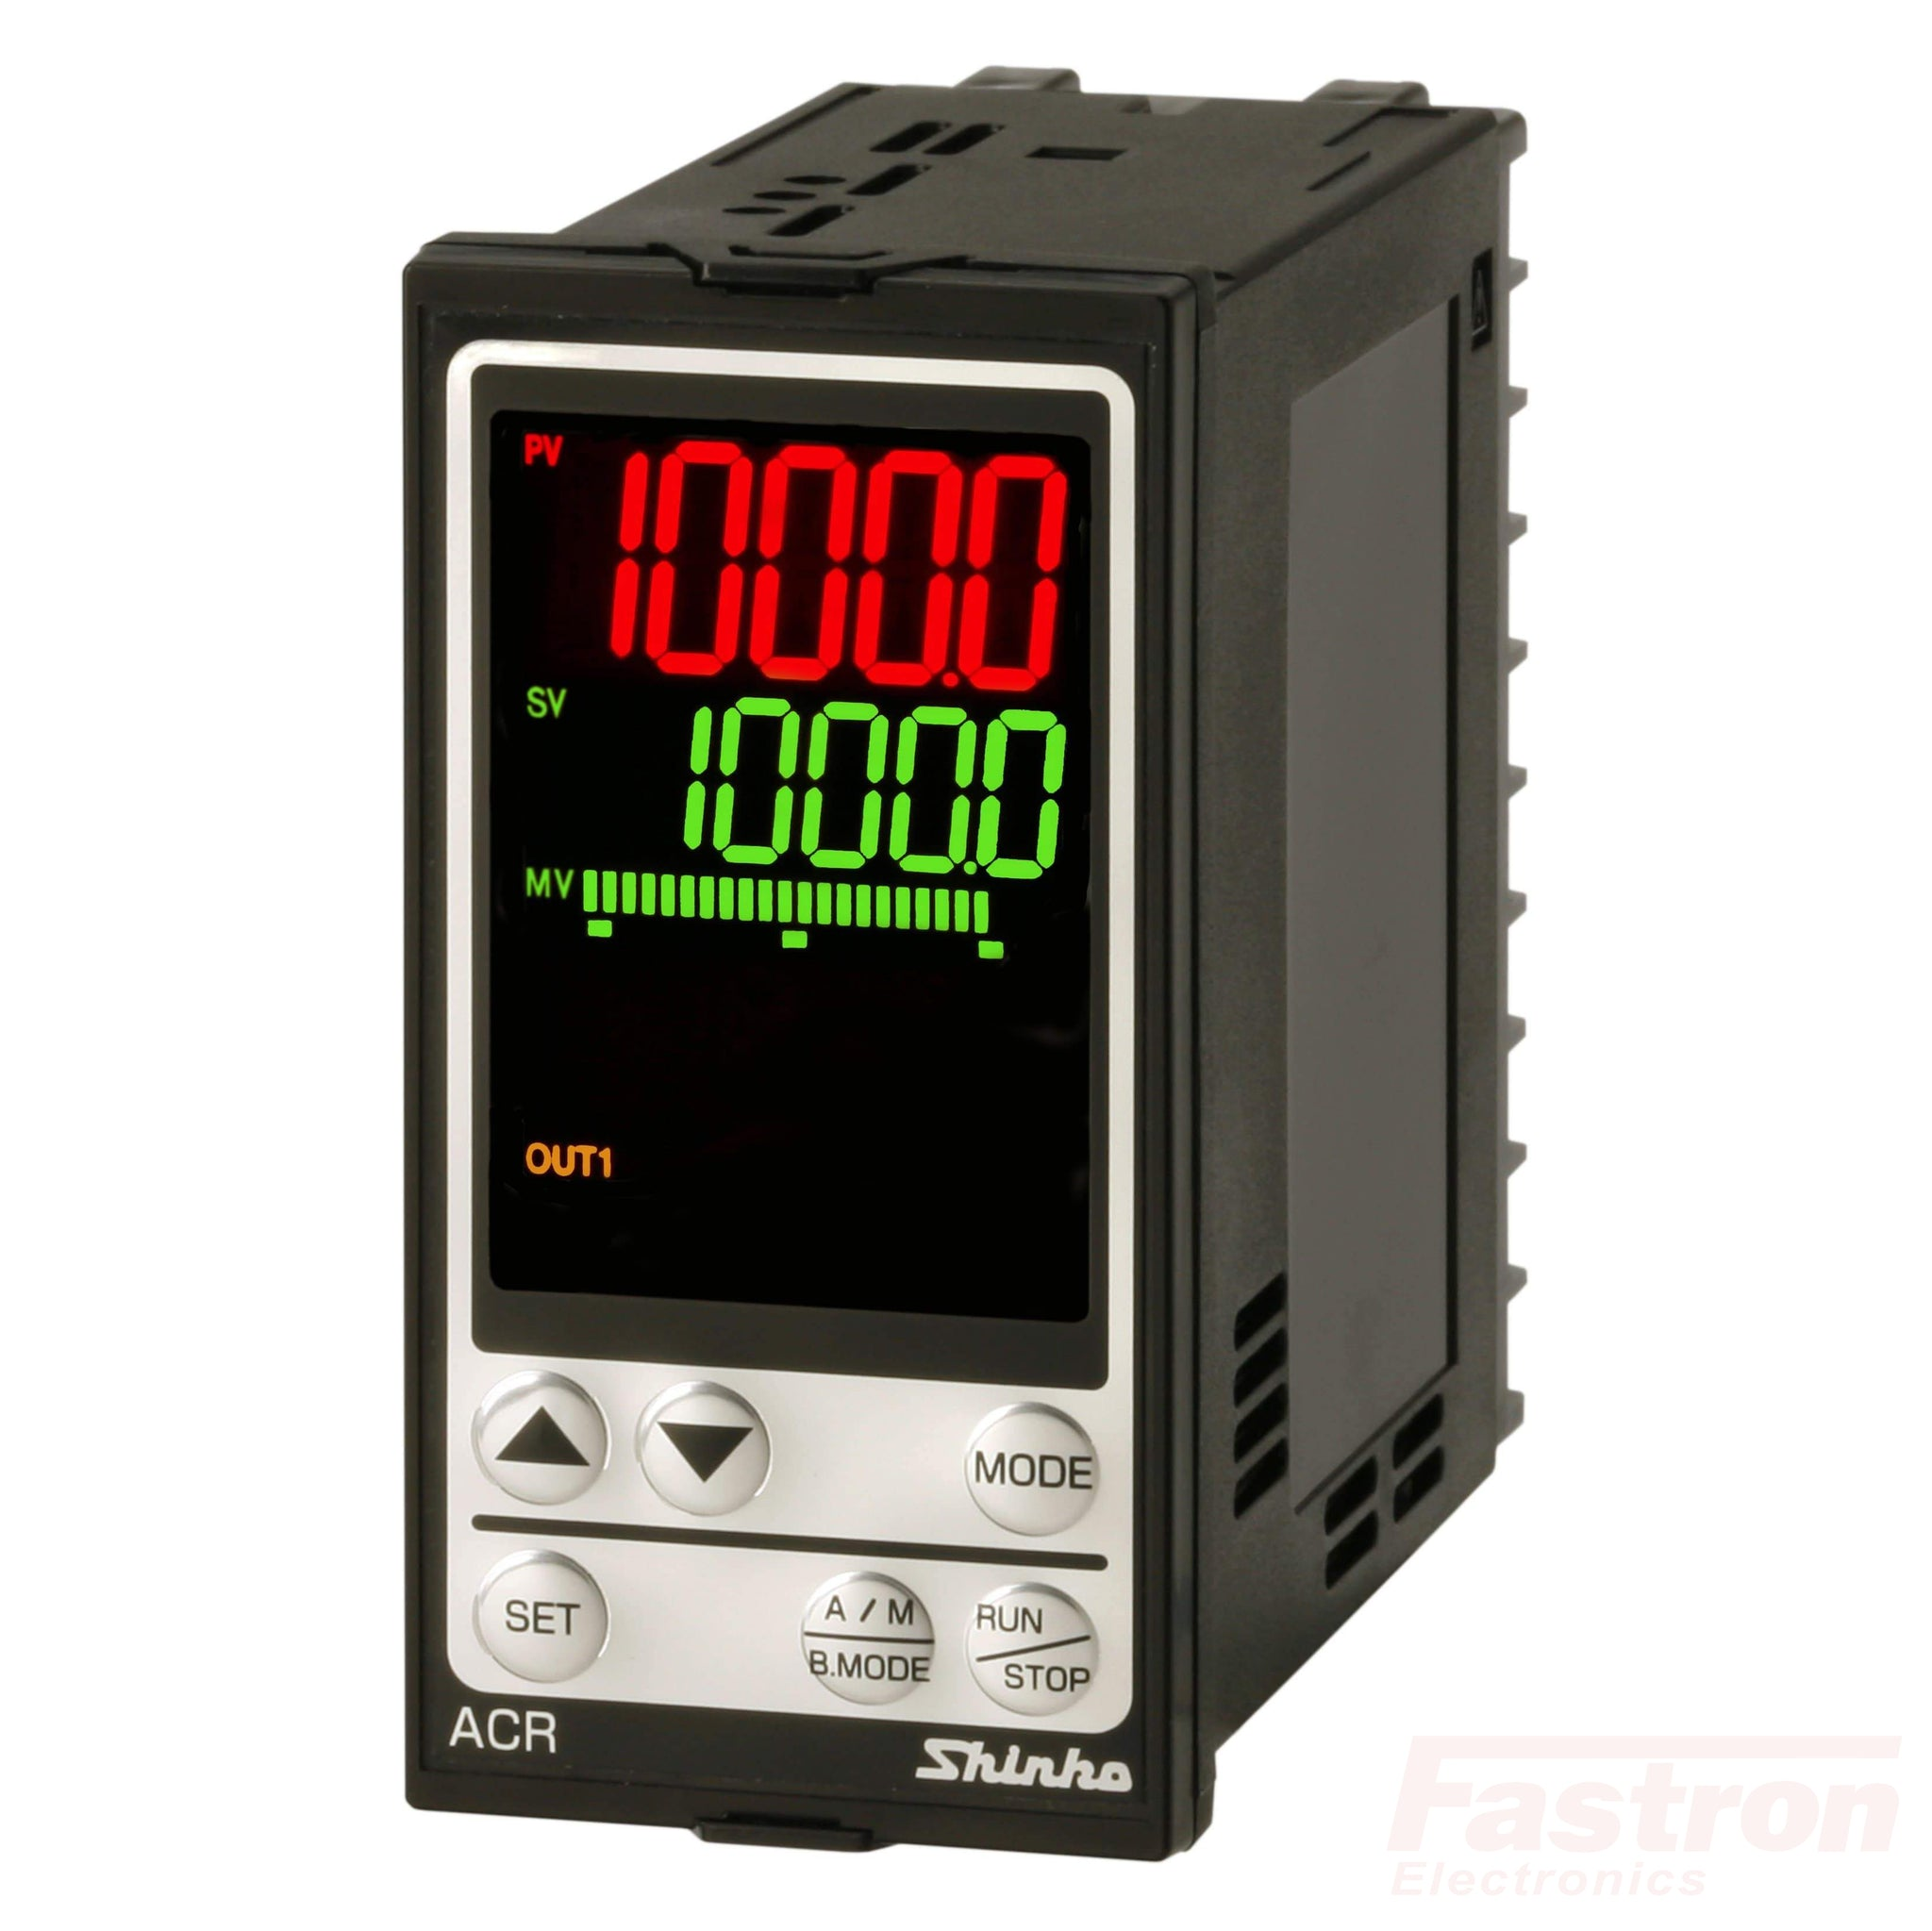 ACR13AR/M EA1 Temp Controller, 48x96mm, 100-240VAC,Relay output, External Setting